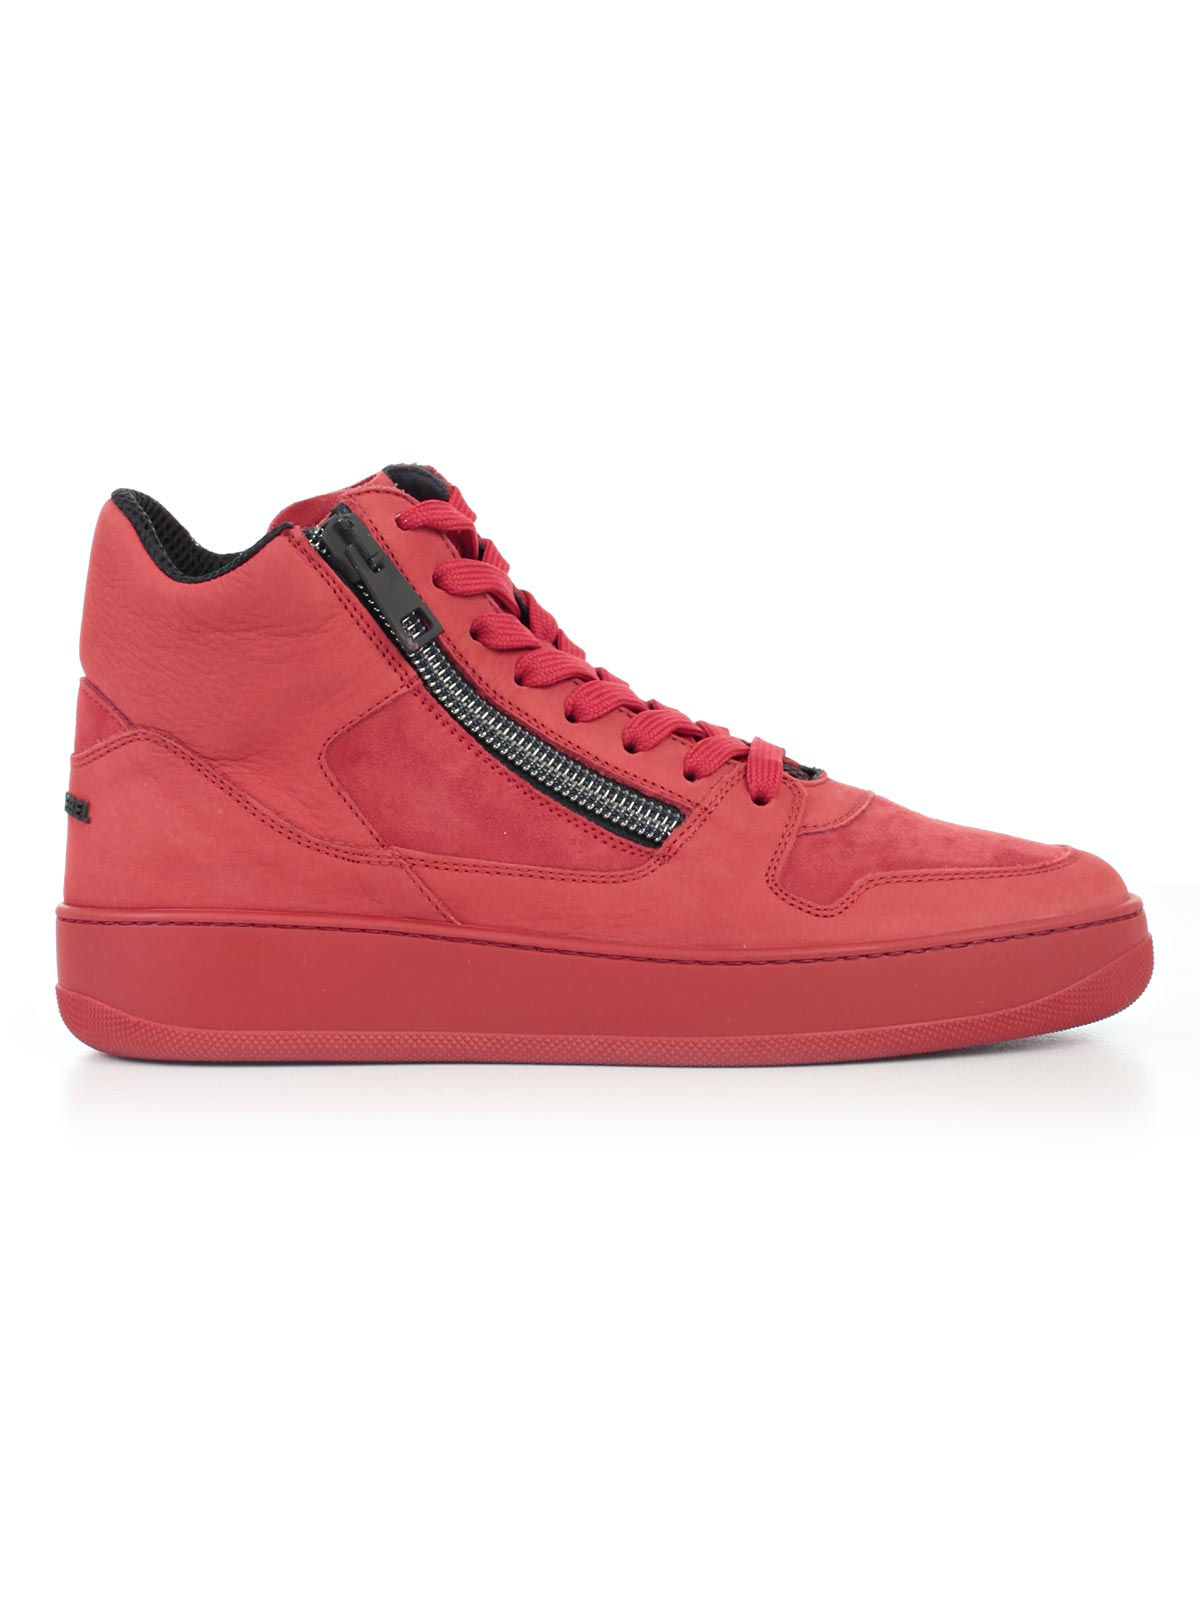 Picture of HOGAN REBEL FOOTWEAR STIVALETTO